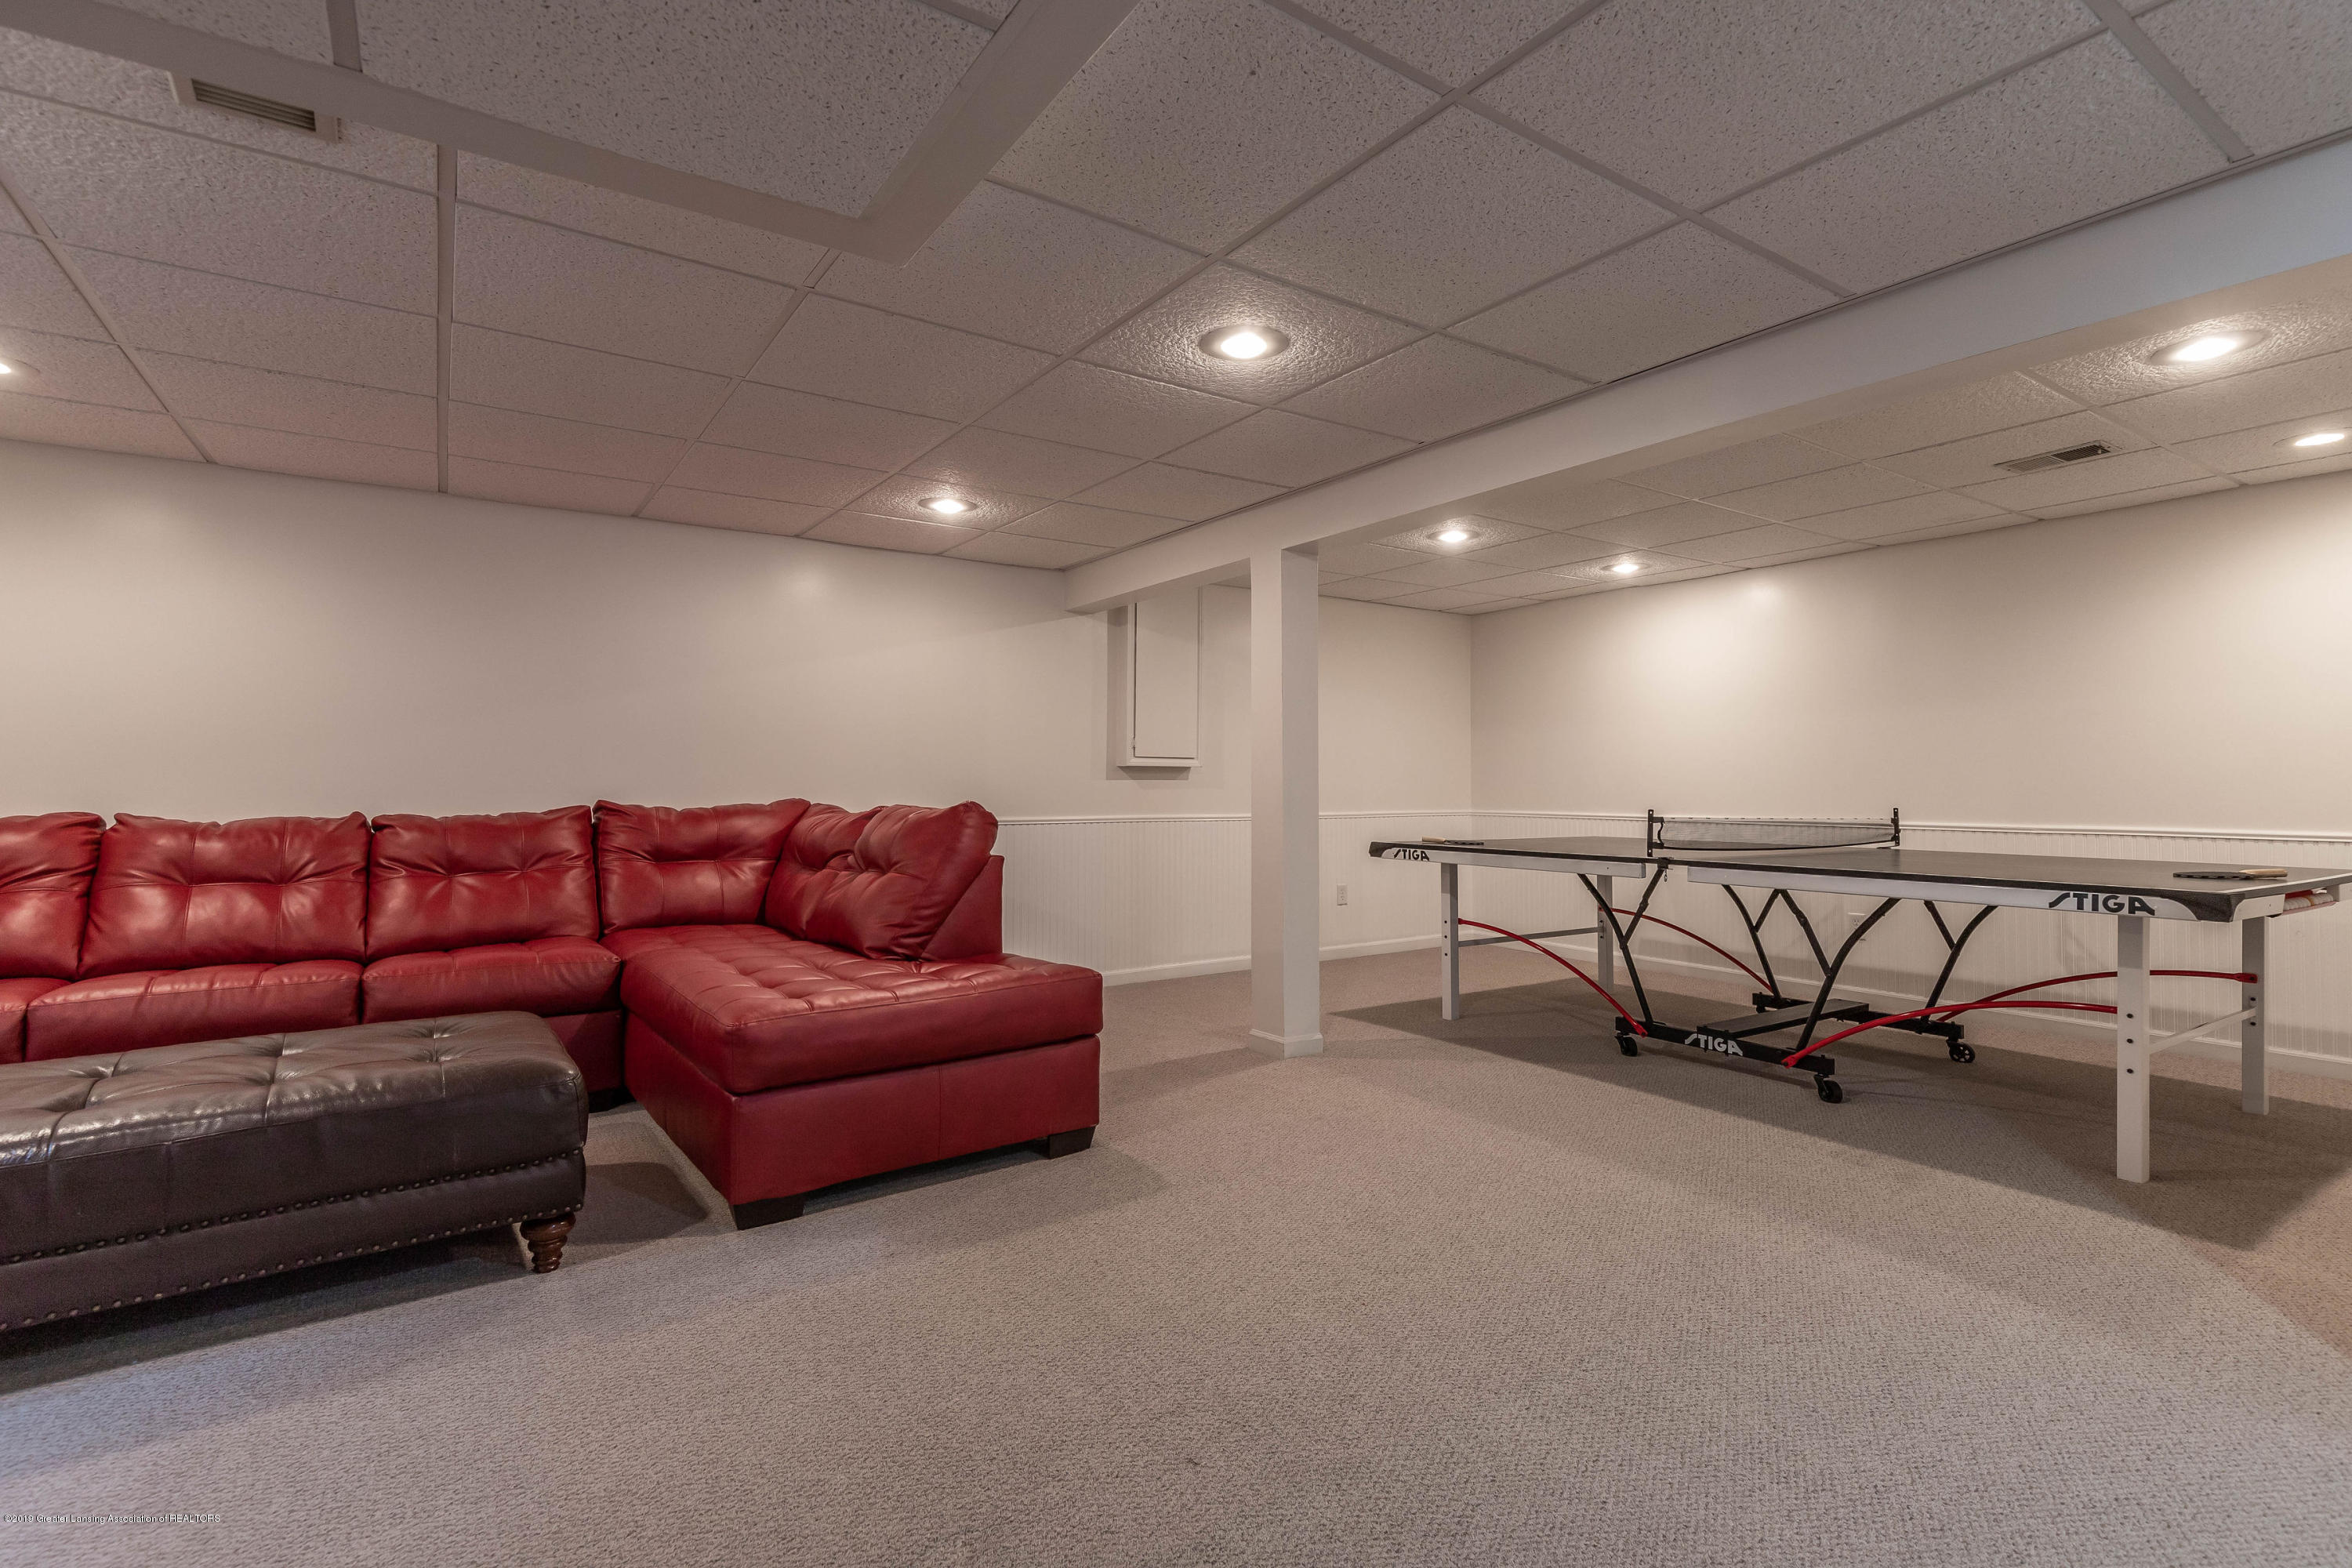 1701 Wyngarden Ln - Lower Level Rec Room - 56